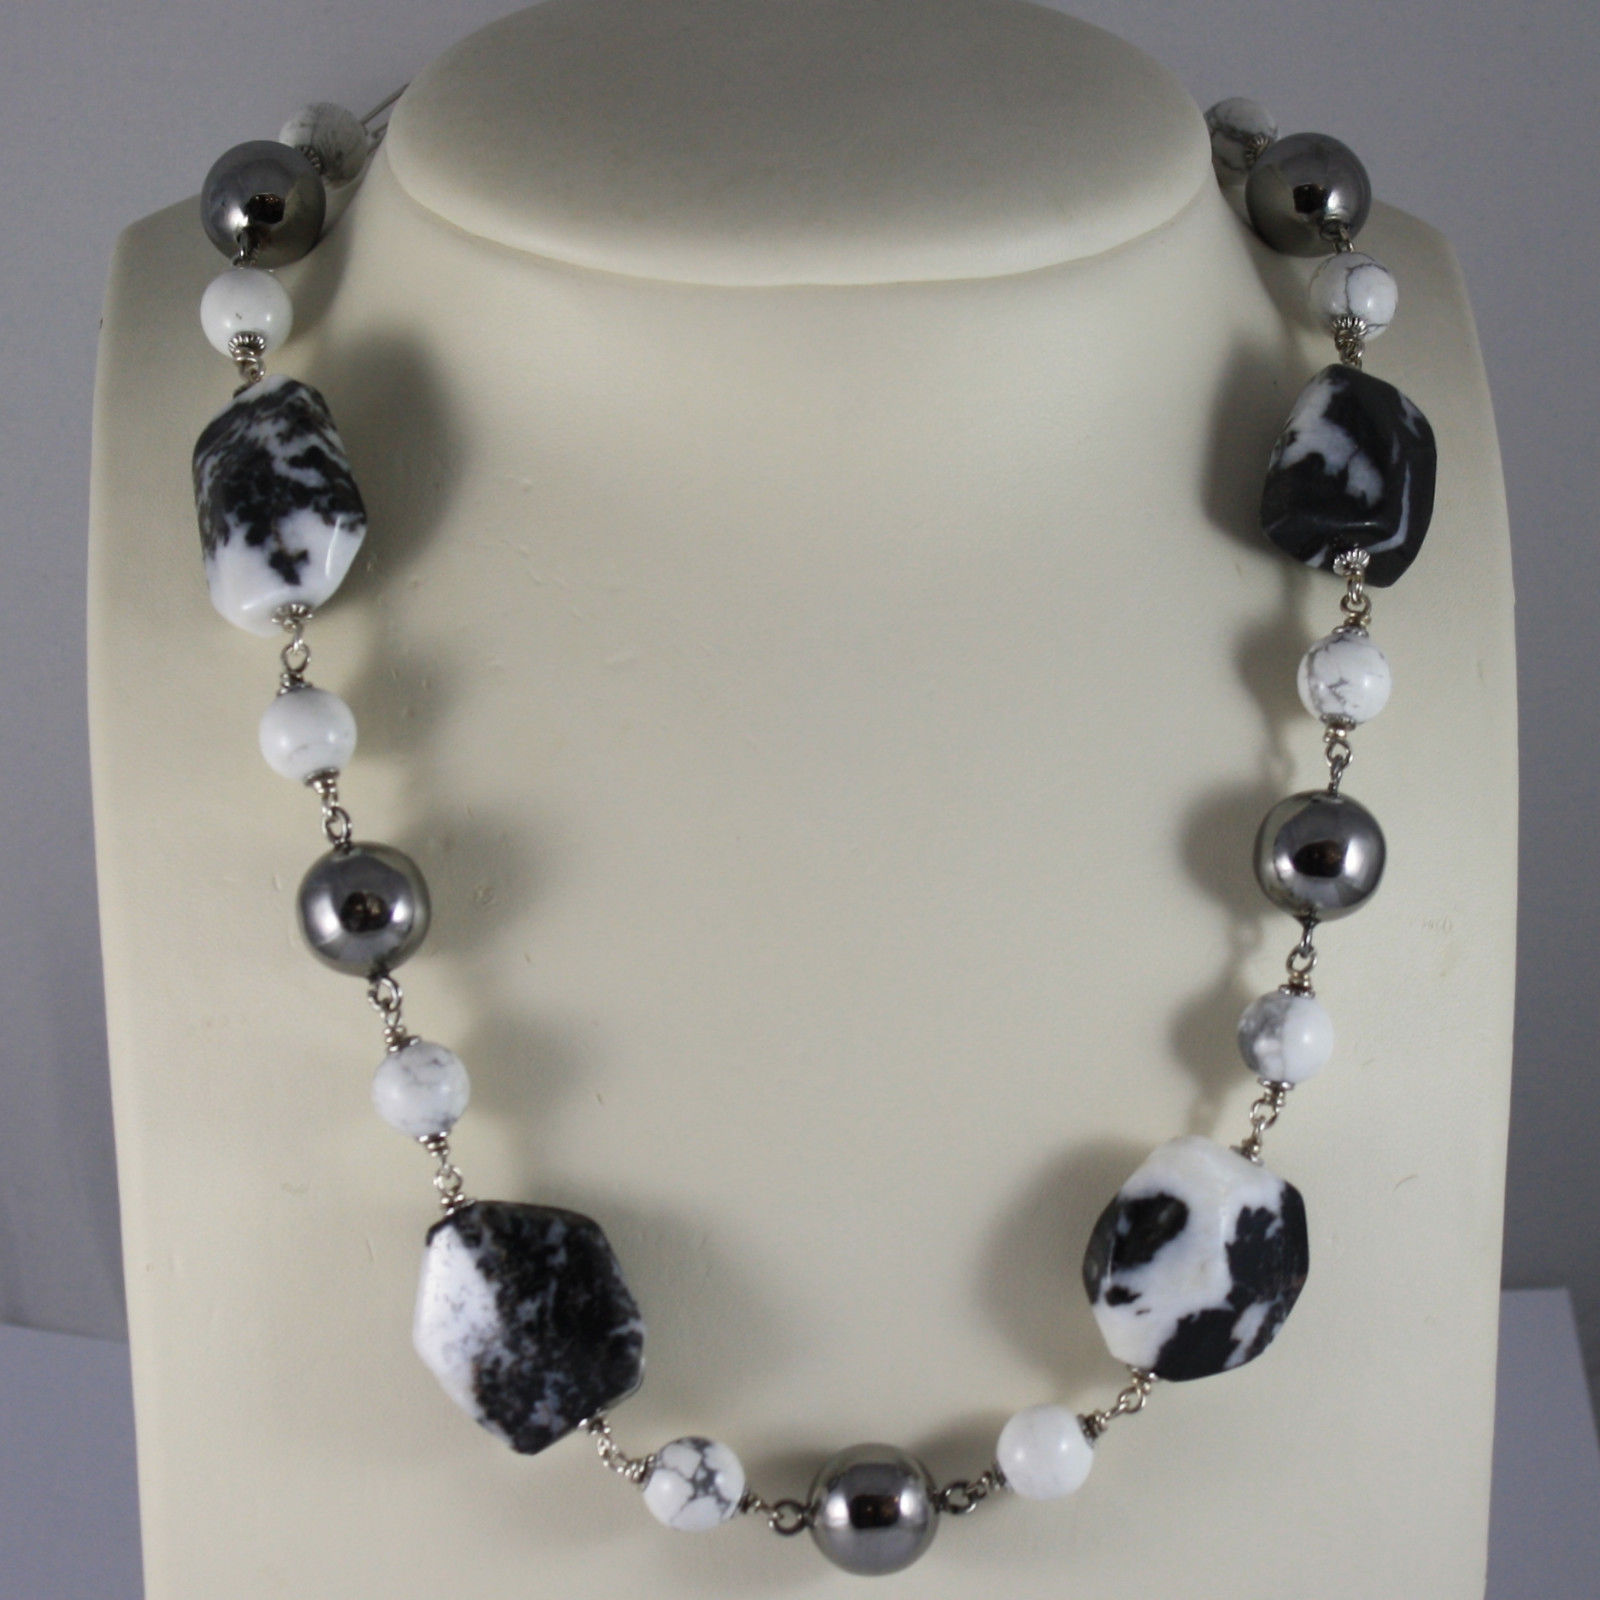 .925 RHODIUM SILVER NECKLACE WITH BLACK & WHITE QUARTZ AND WHITE HOWLITE